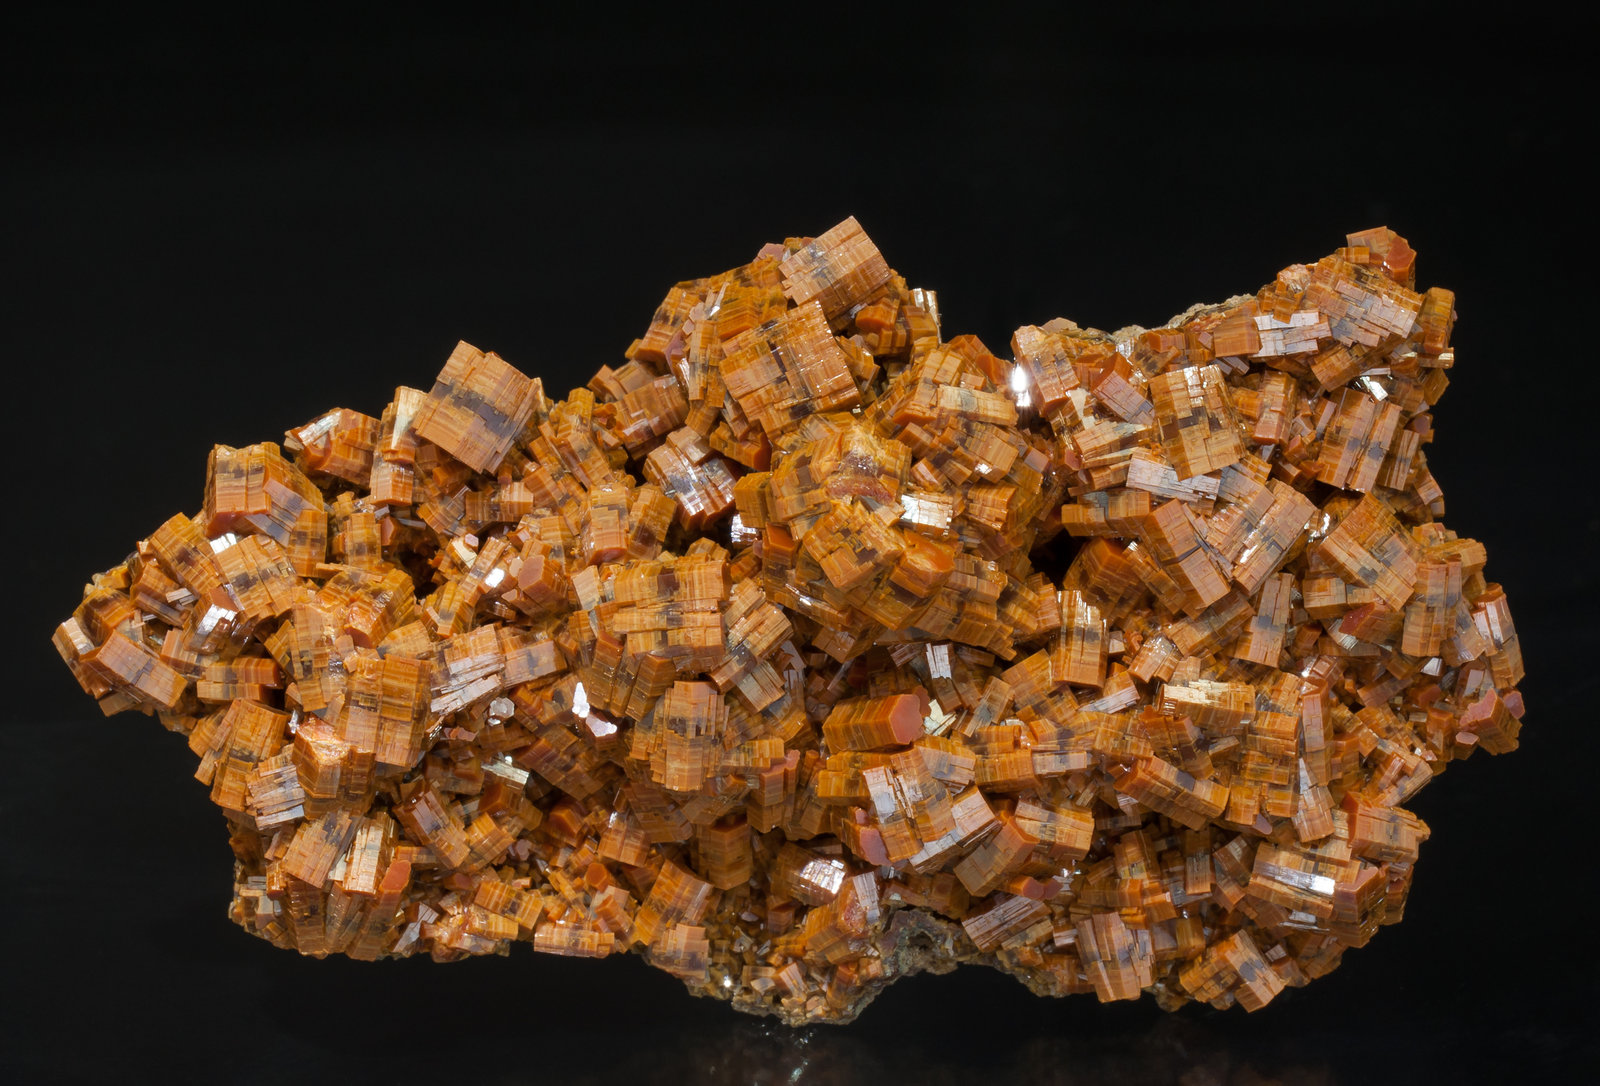 specimens/s_imagesAA0/Vanadinite-EC66AA0f.jpg